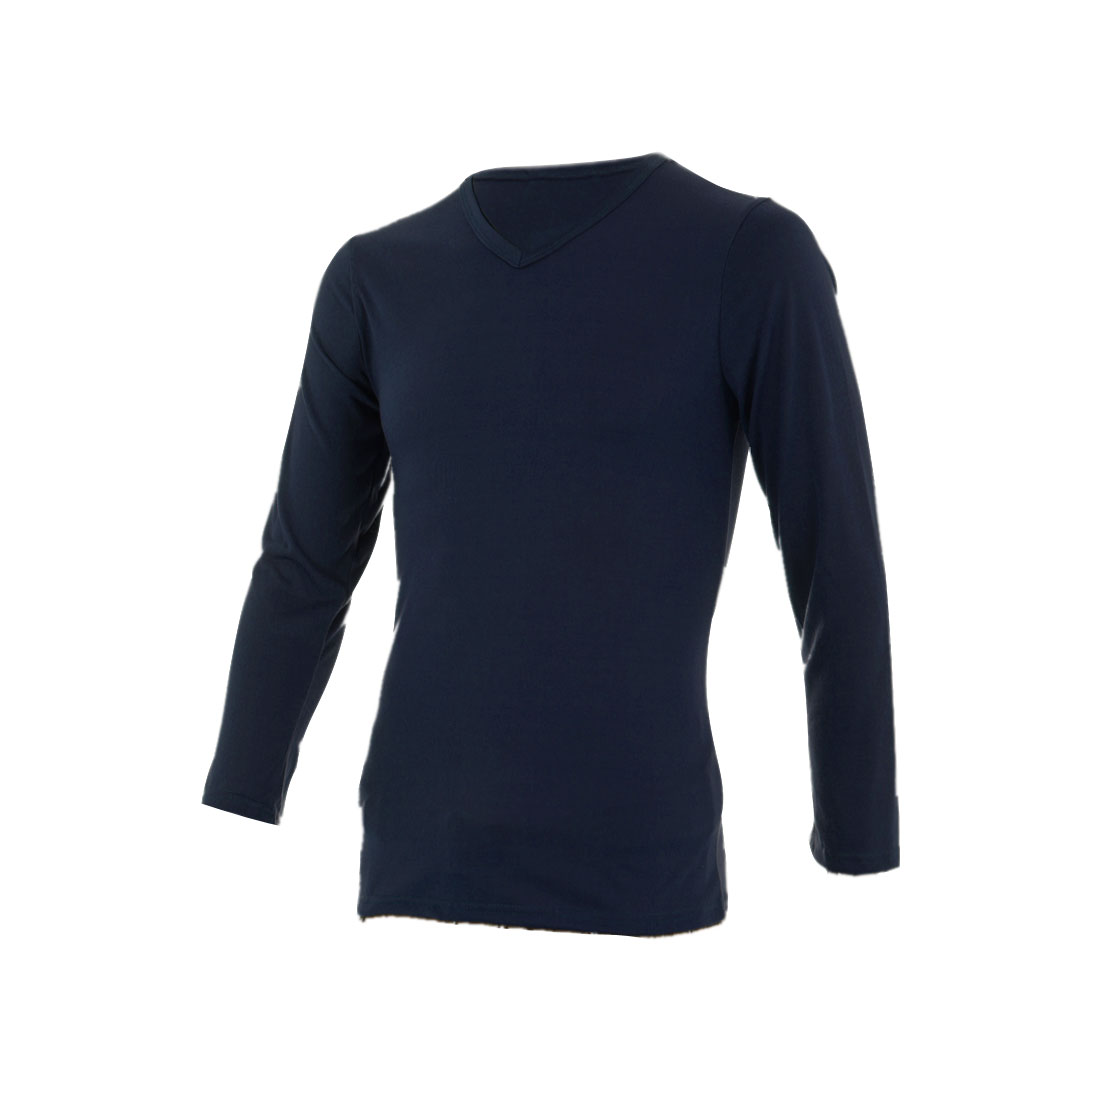 Stylish Men Pullover Stretchy T-shirt Navy Blue S